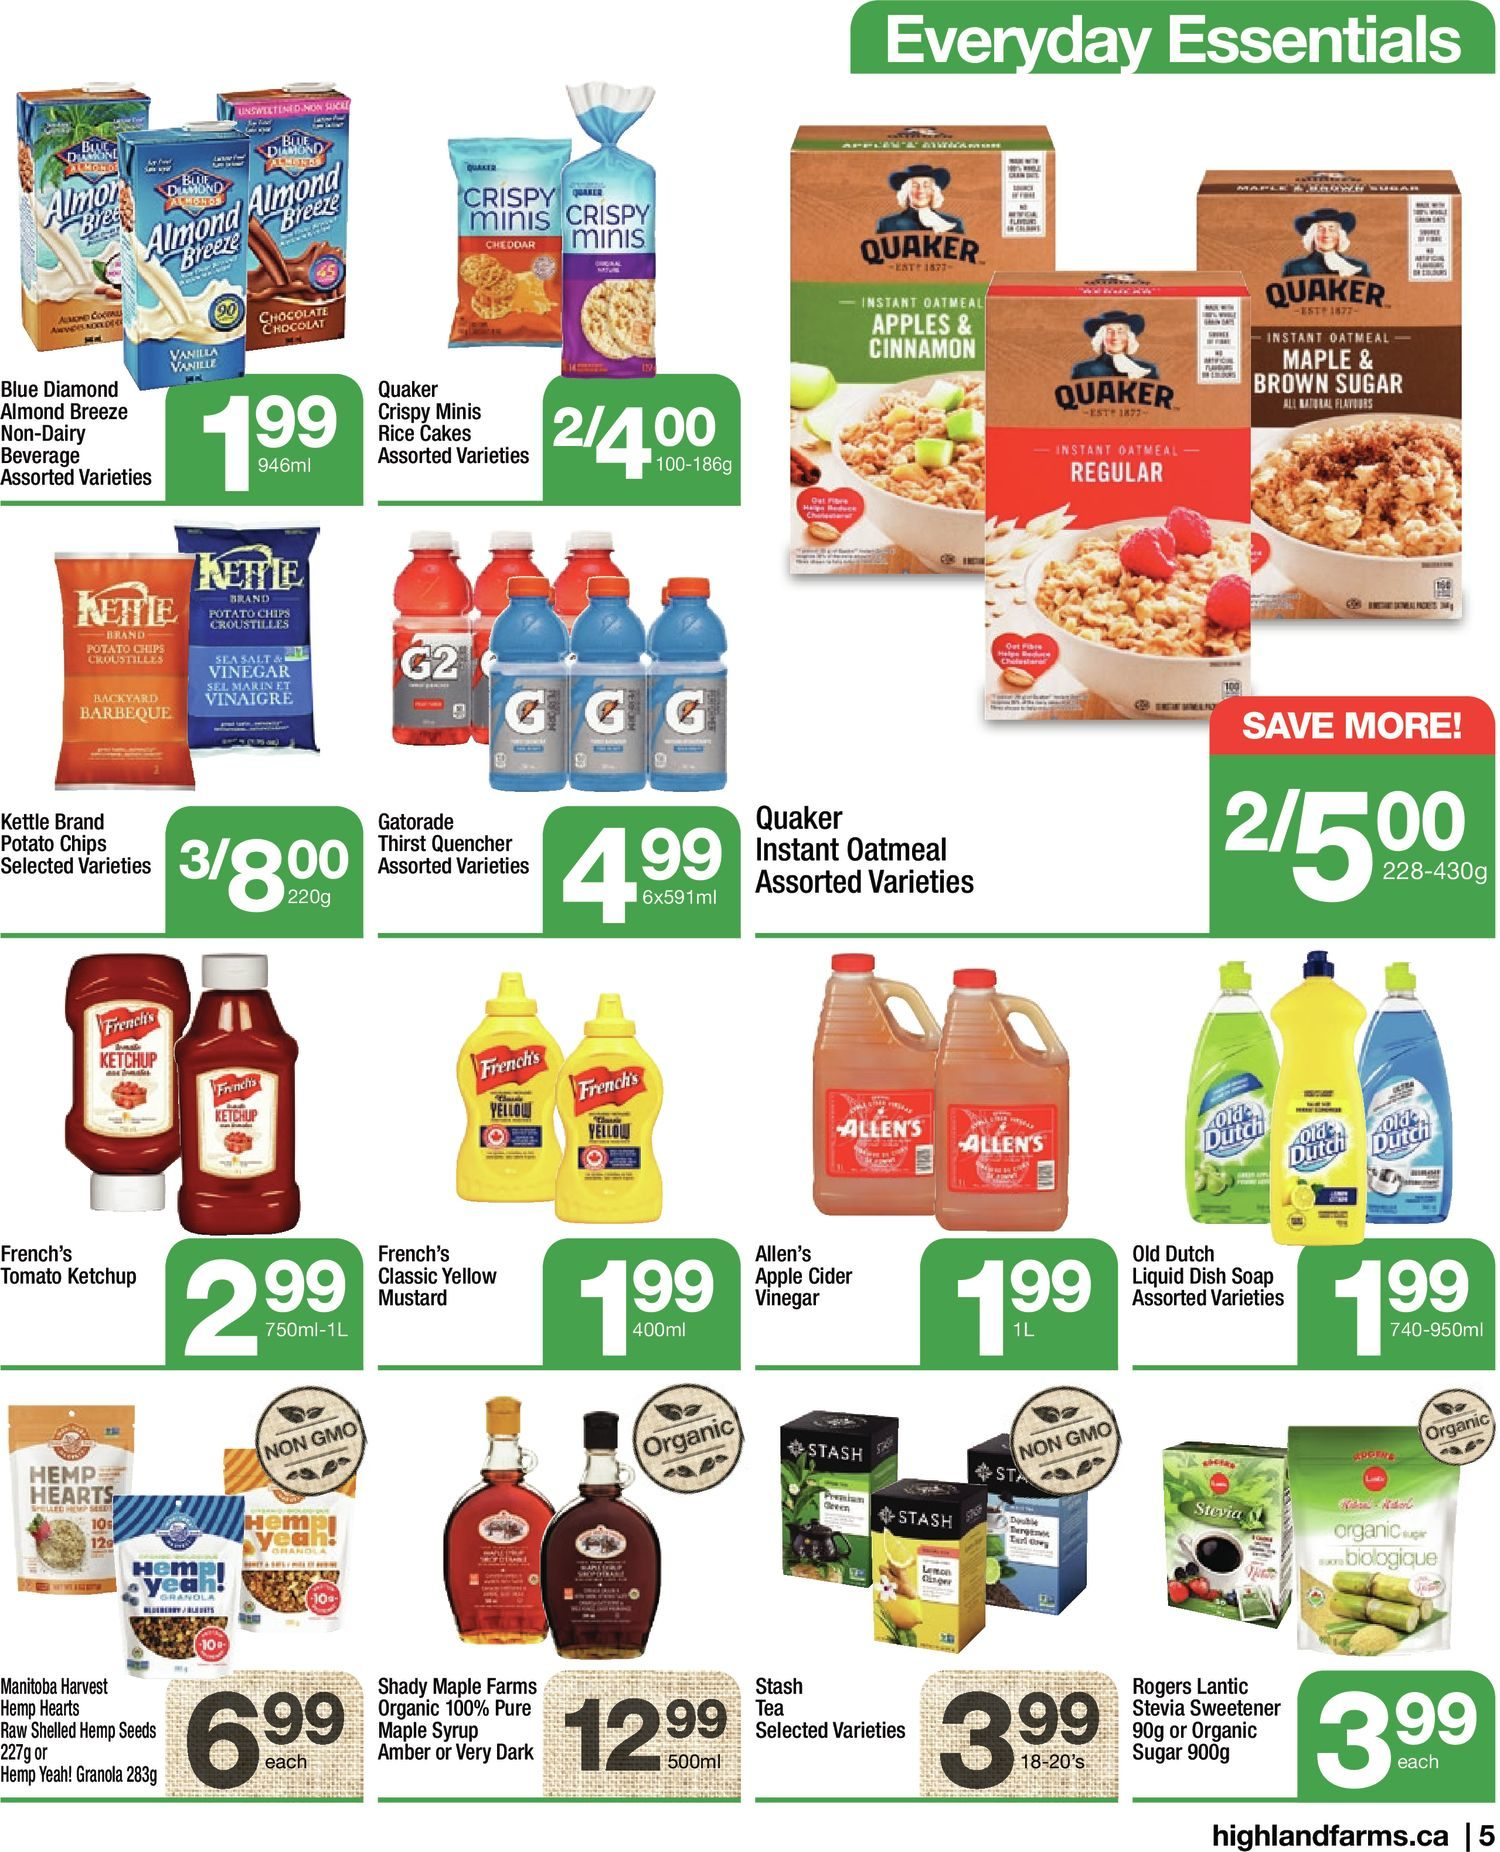 Highland Farms - Weekly Flyer Specials - Start Fresh - Page 5